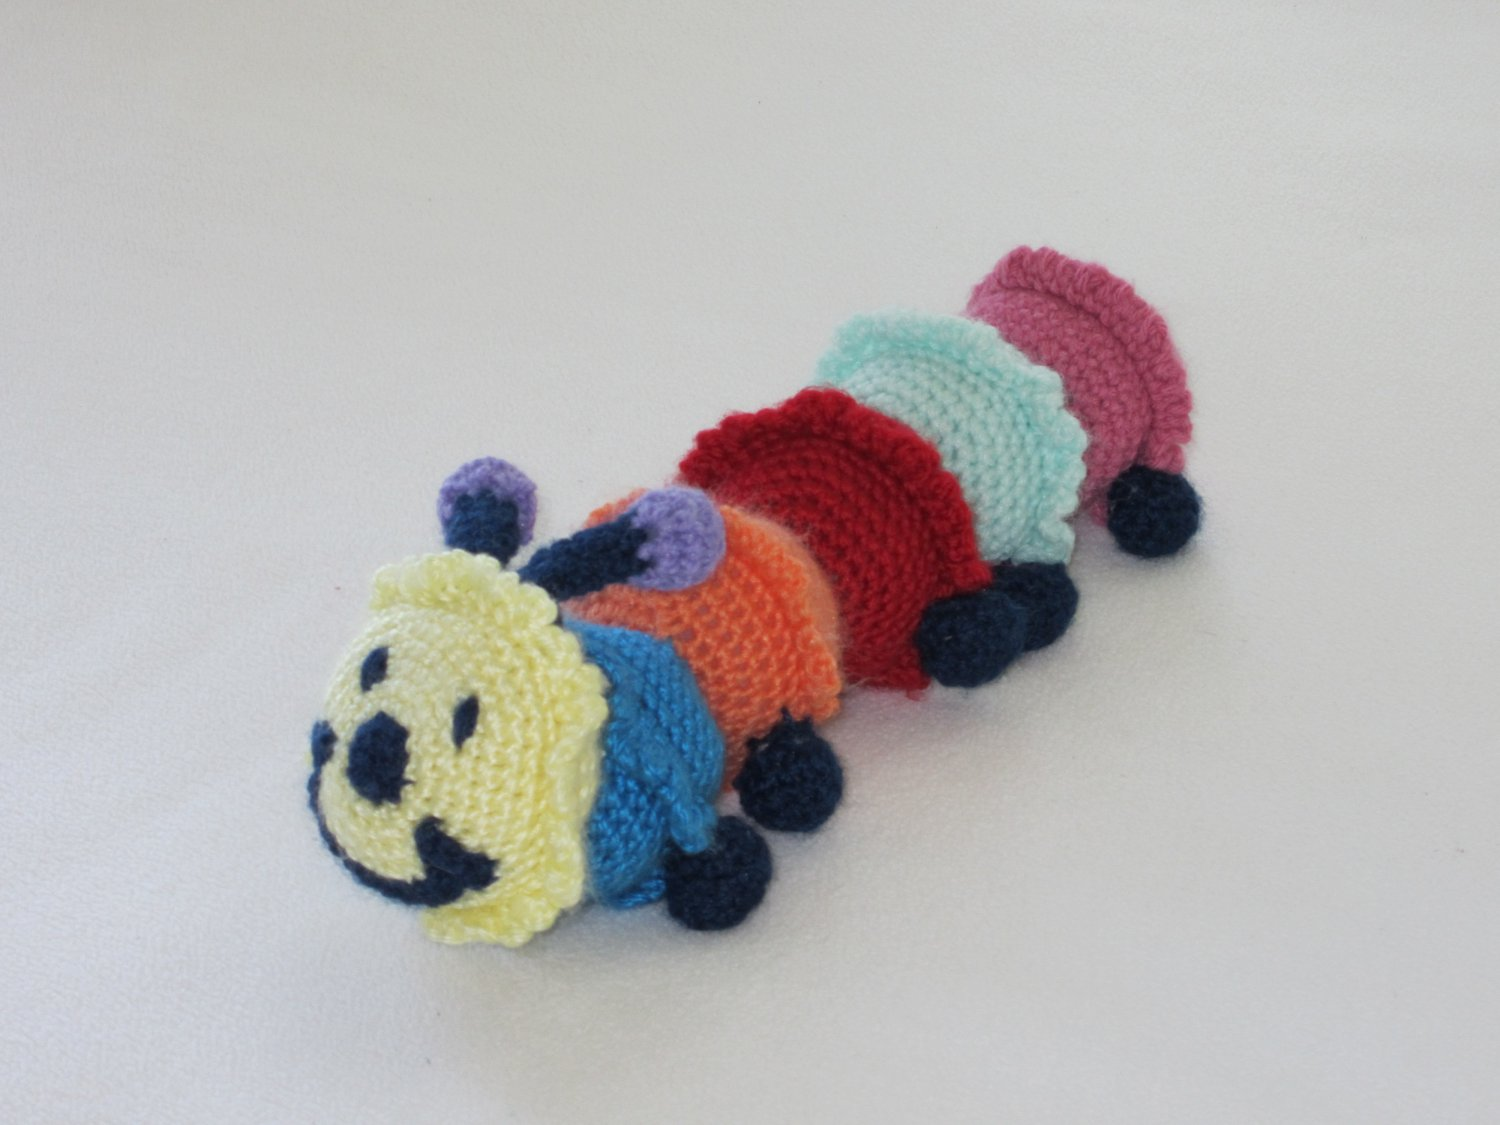 Crochet caterpilar